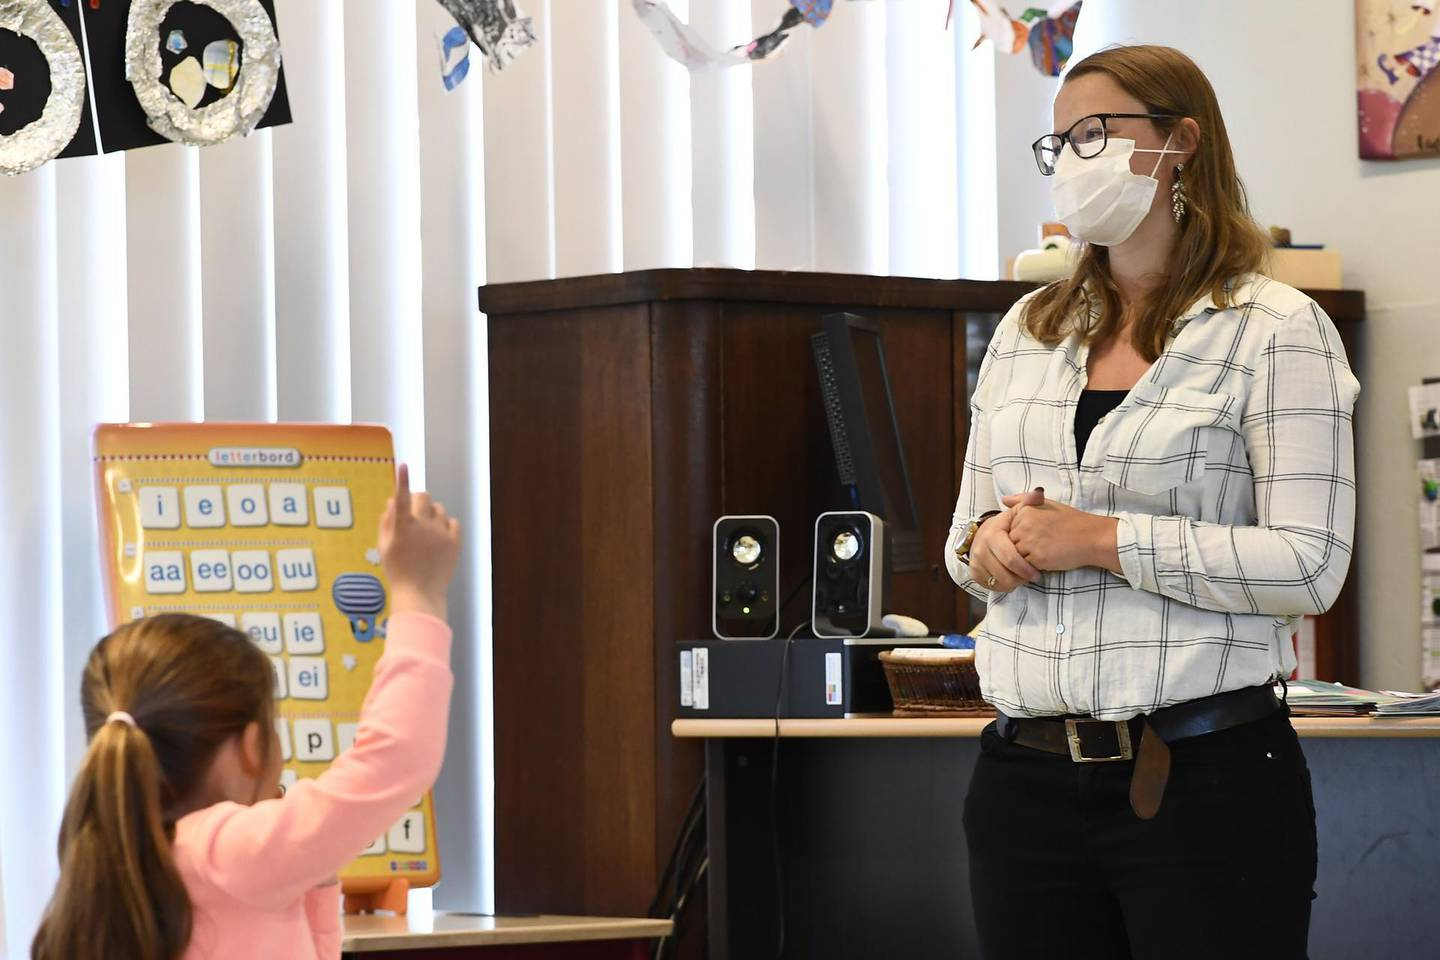 A teacher wearing a mask gives class at Olfa Elsdonk primary school in Edegem, Antwerp, on May 15, 2020 as schools test the re-opening and start again for a limited number of grades on May 18 amid the pandemic of novel coronavirus (COVID-19).  Belgium is in its ninth week of confinement.   - Belgium OUT  / AFP / Belga / DIRK WAEM